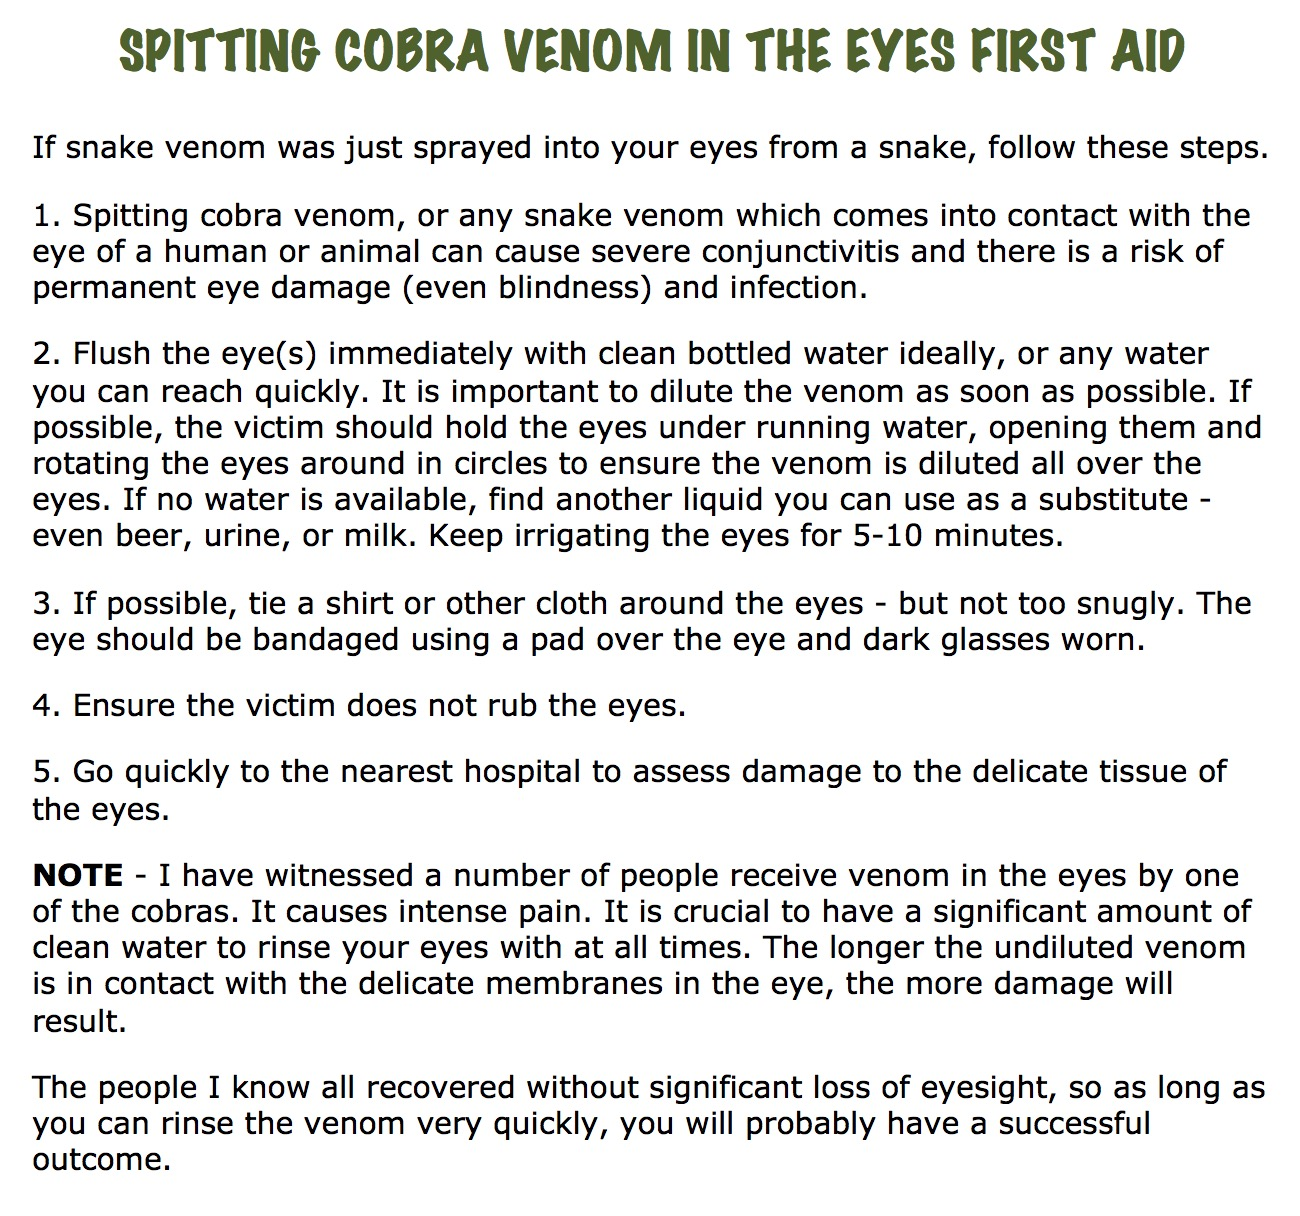 Initial First Aid Instructions for Spitting Cobra Venom in Eyes